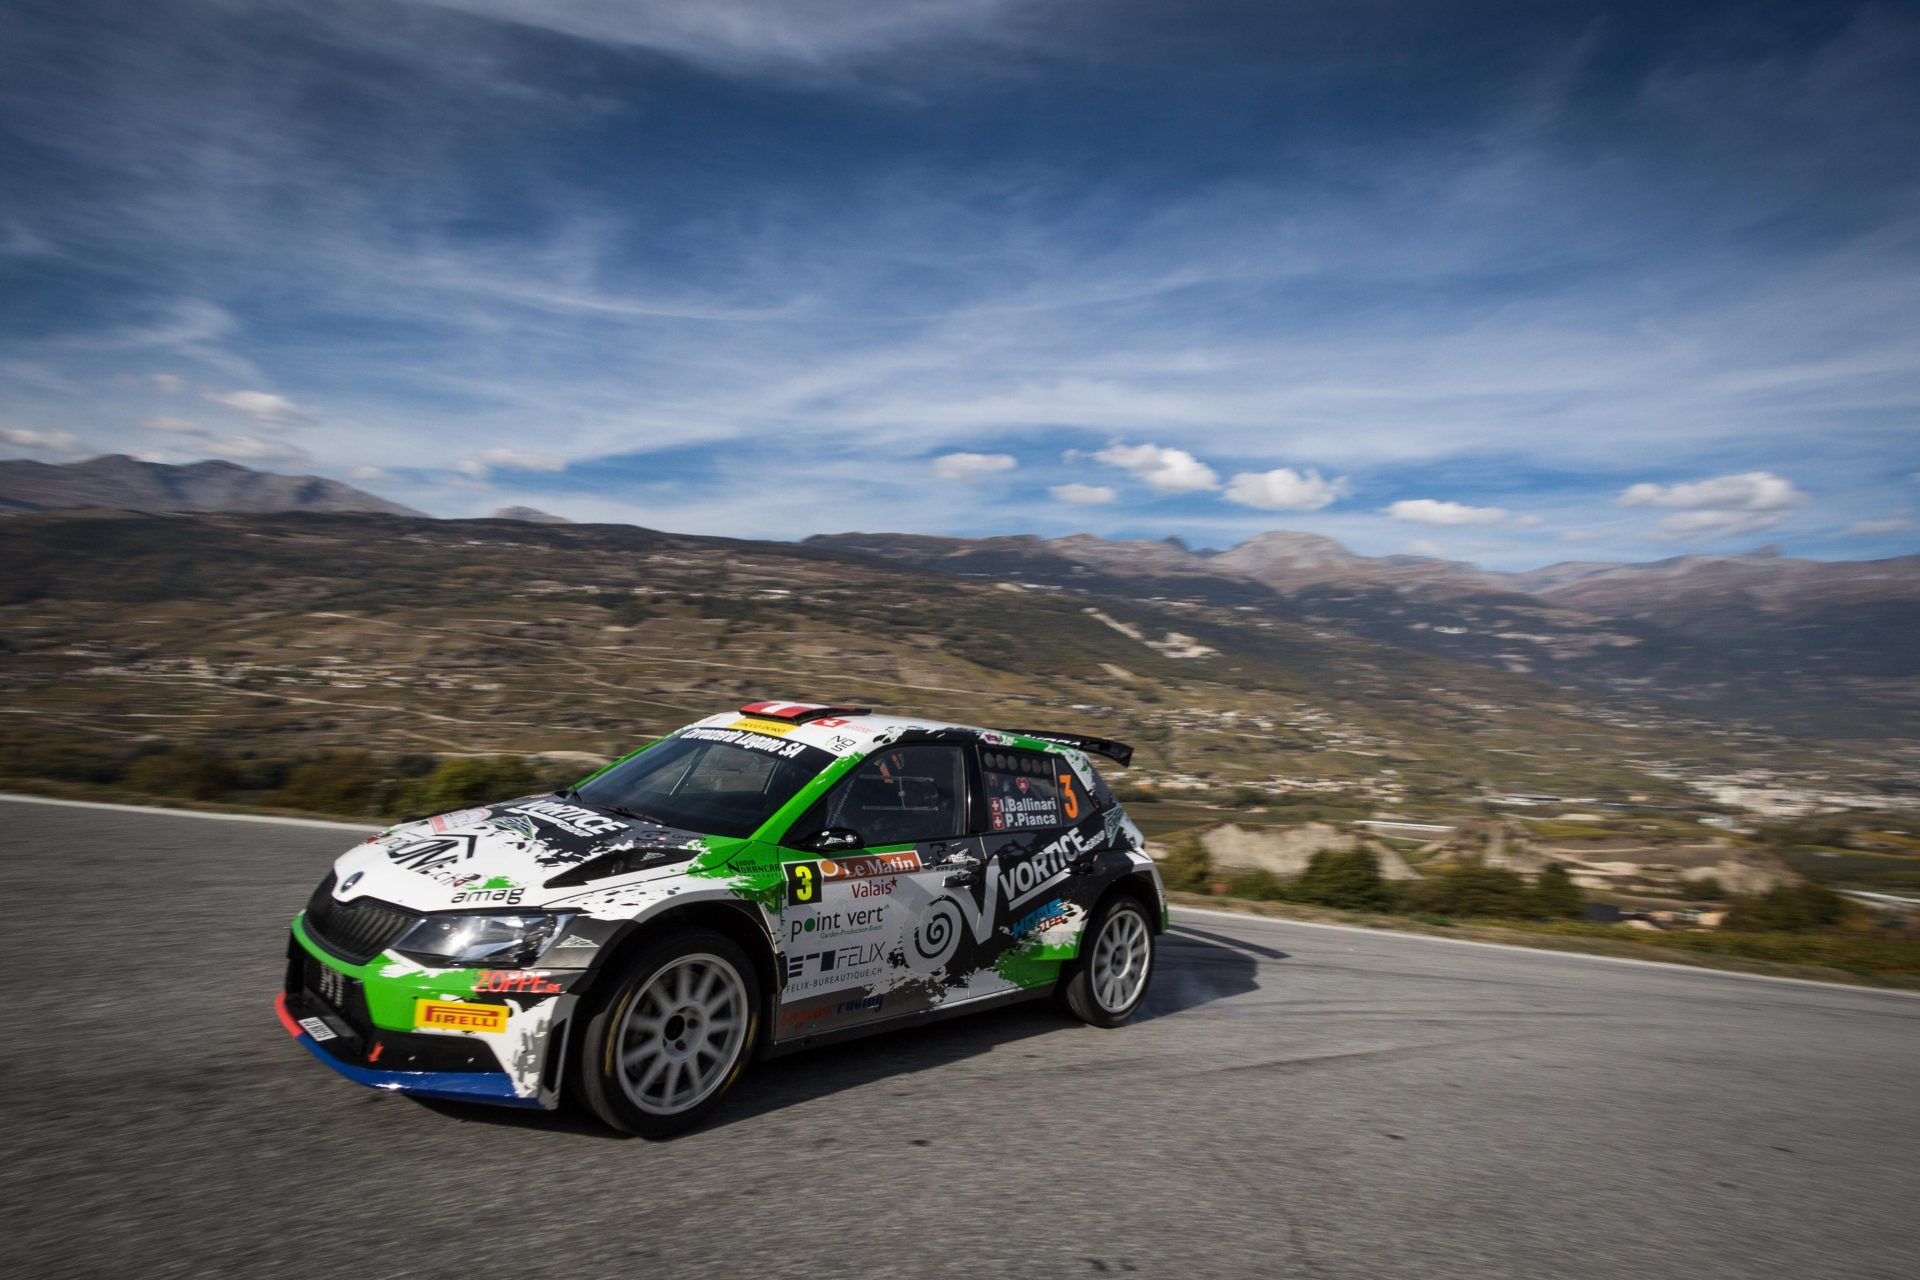 Ivan Ballinari: From a String of Second Places to the Title with FABIA R5 | Champs Around the World